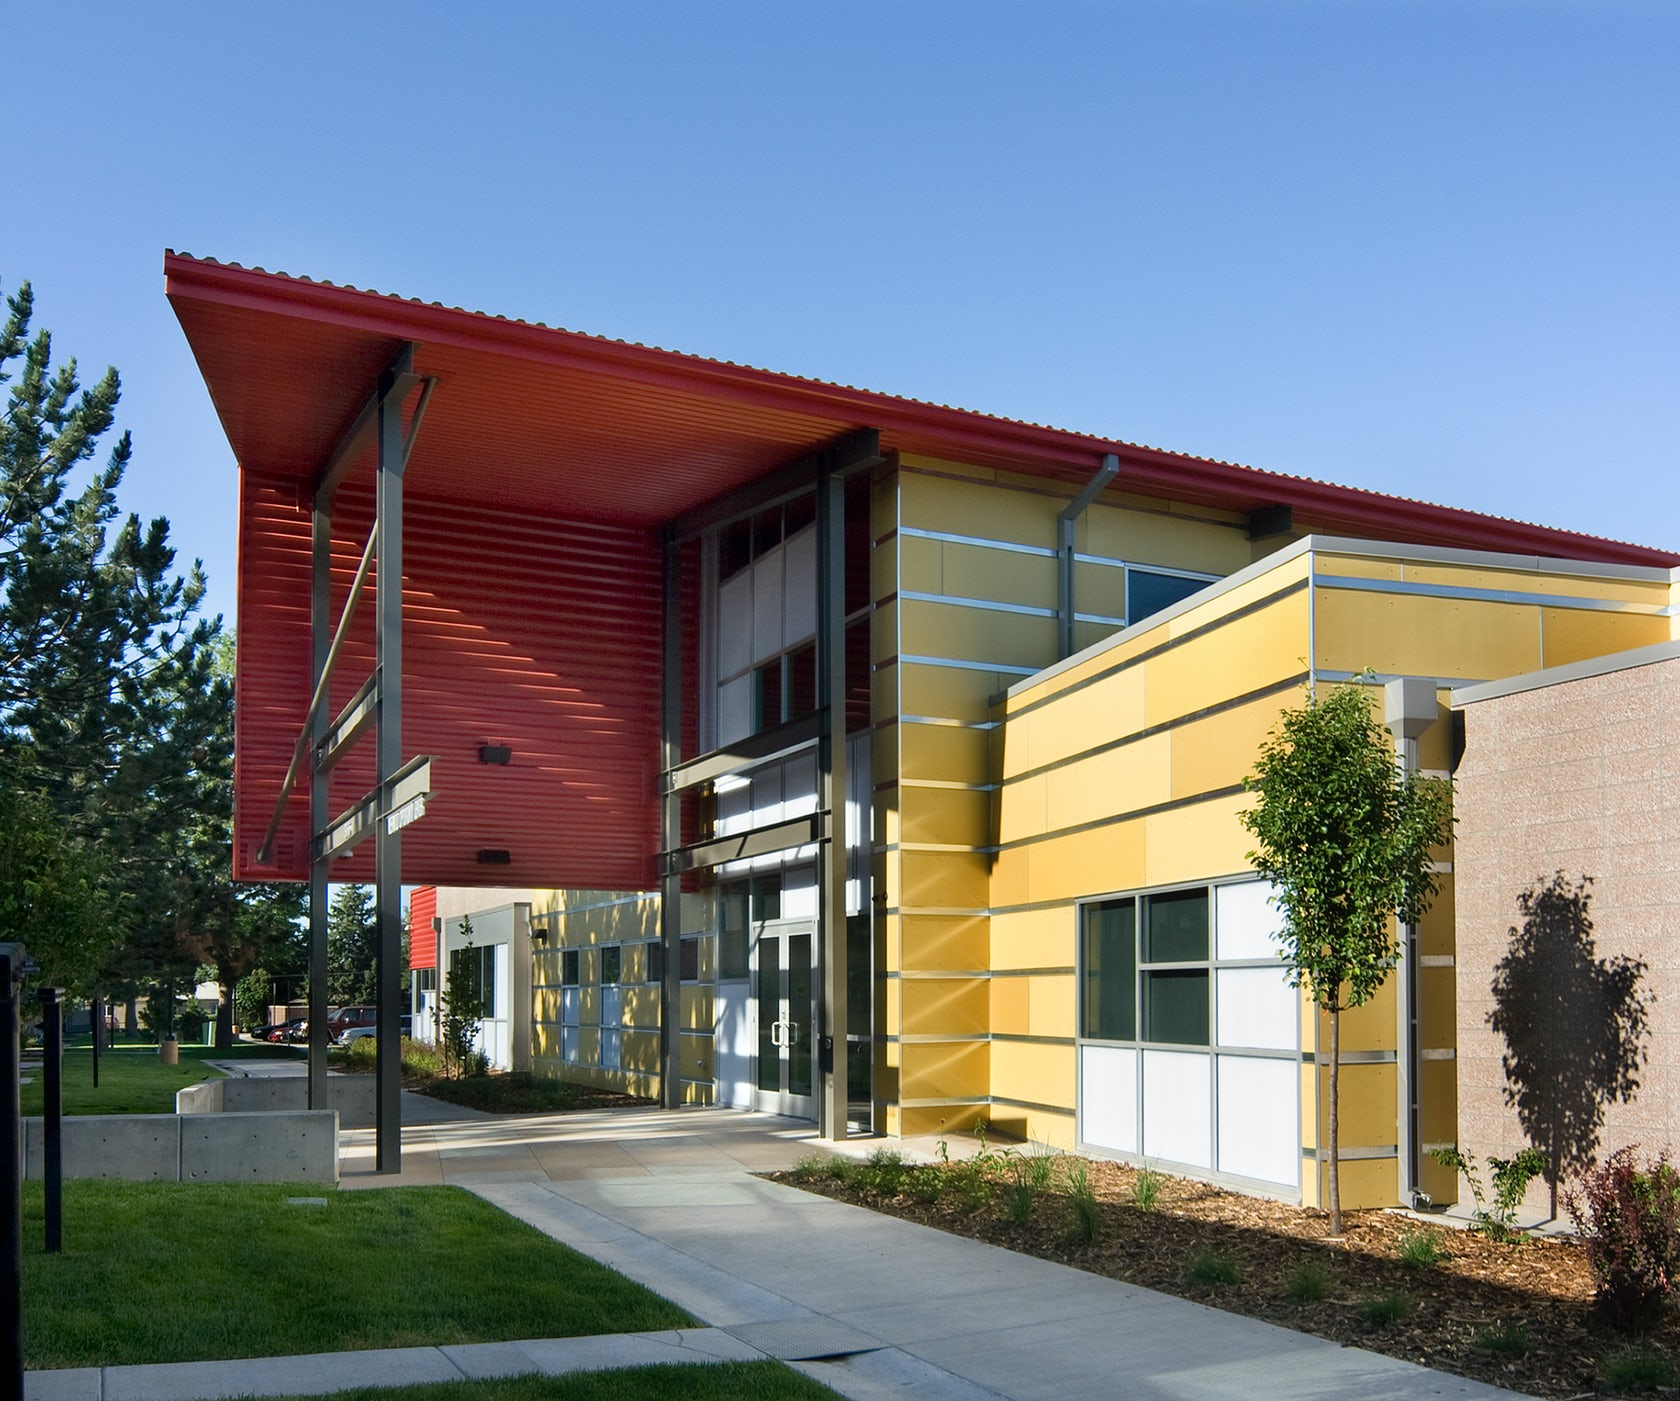 Westwood Opportunity Center